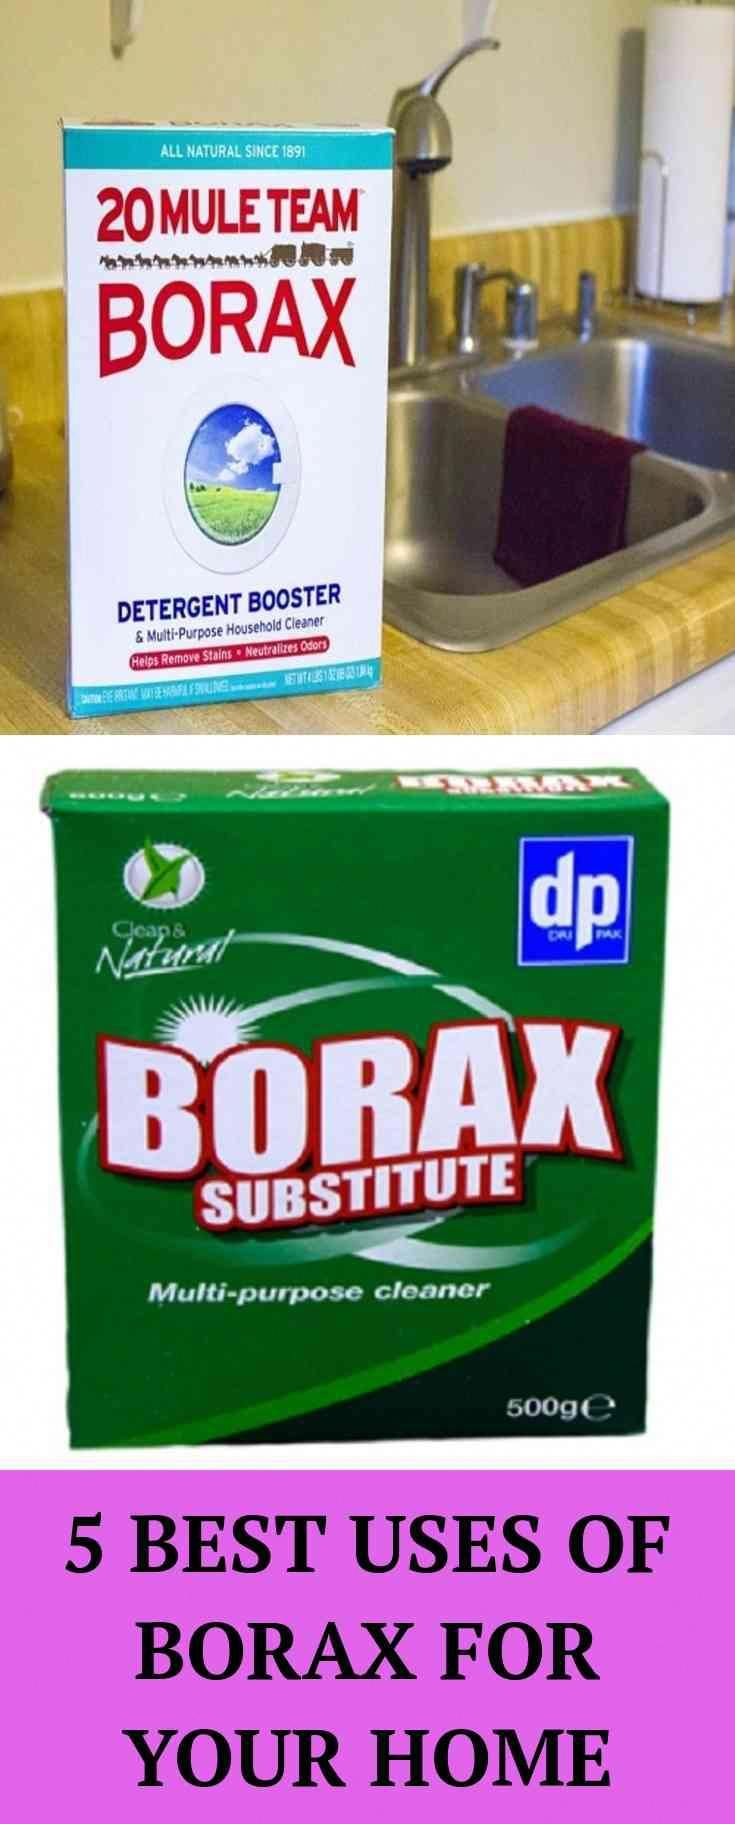 Check Want To Know More About Borax This Is How Look Homeimprovement Borax Cleaning What Is Borax